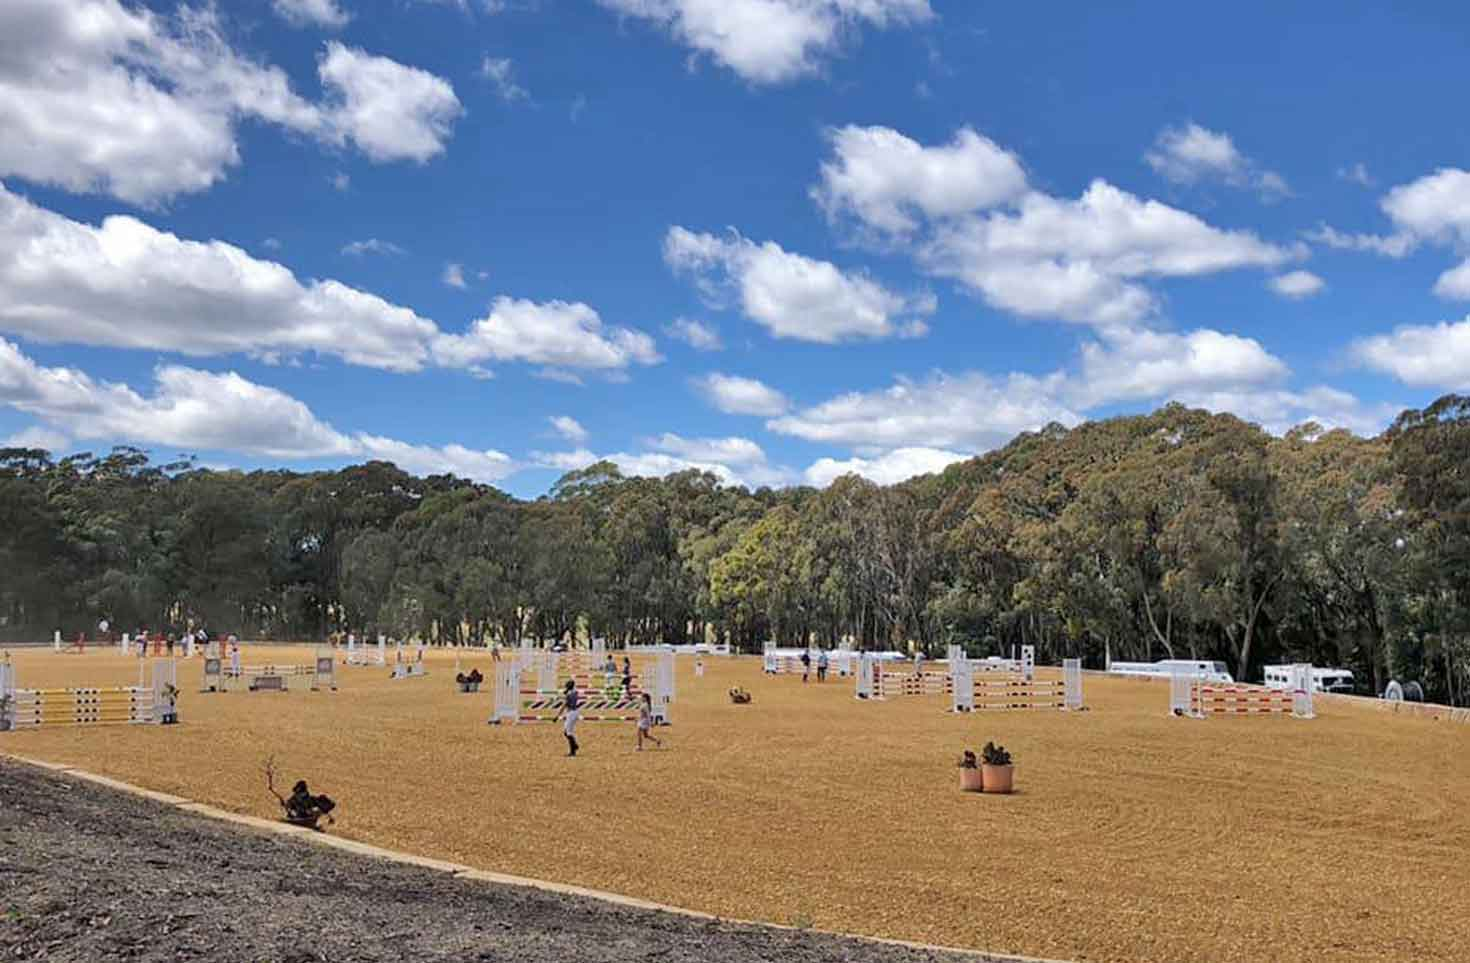 Lovely new venue: Stonewall Equestrian hosts local competition